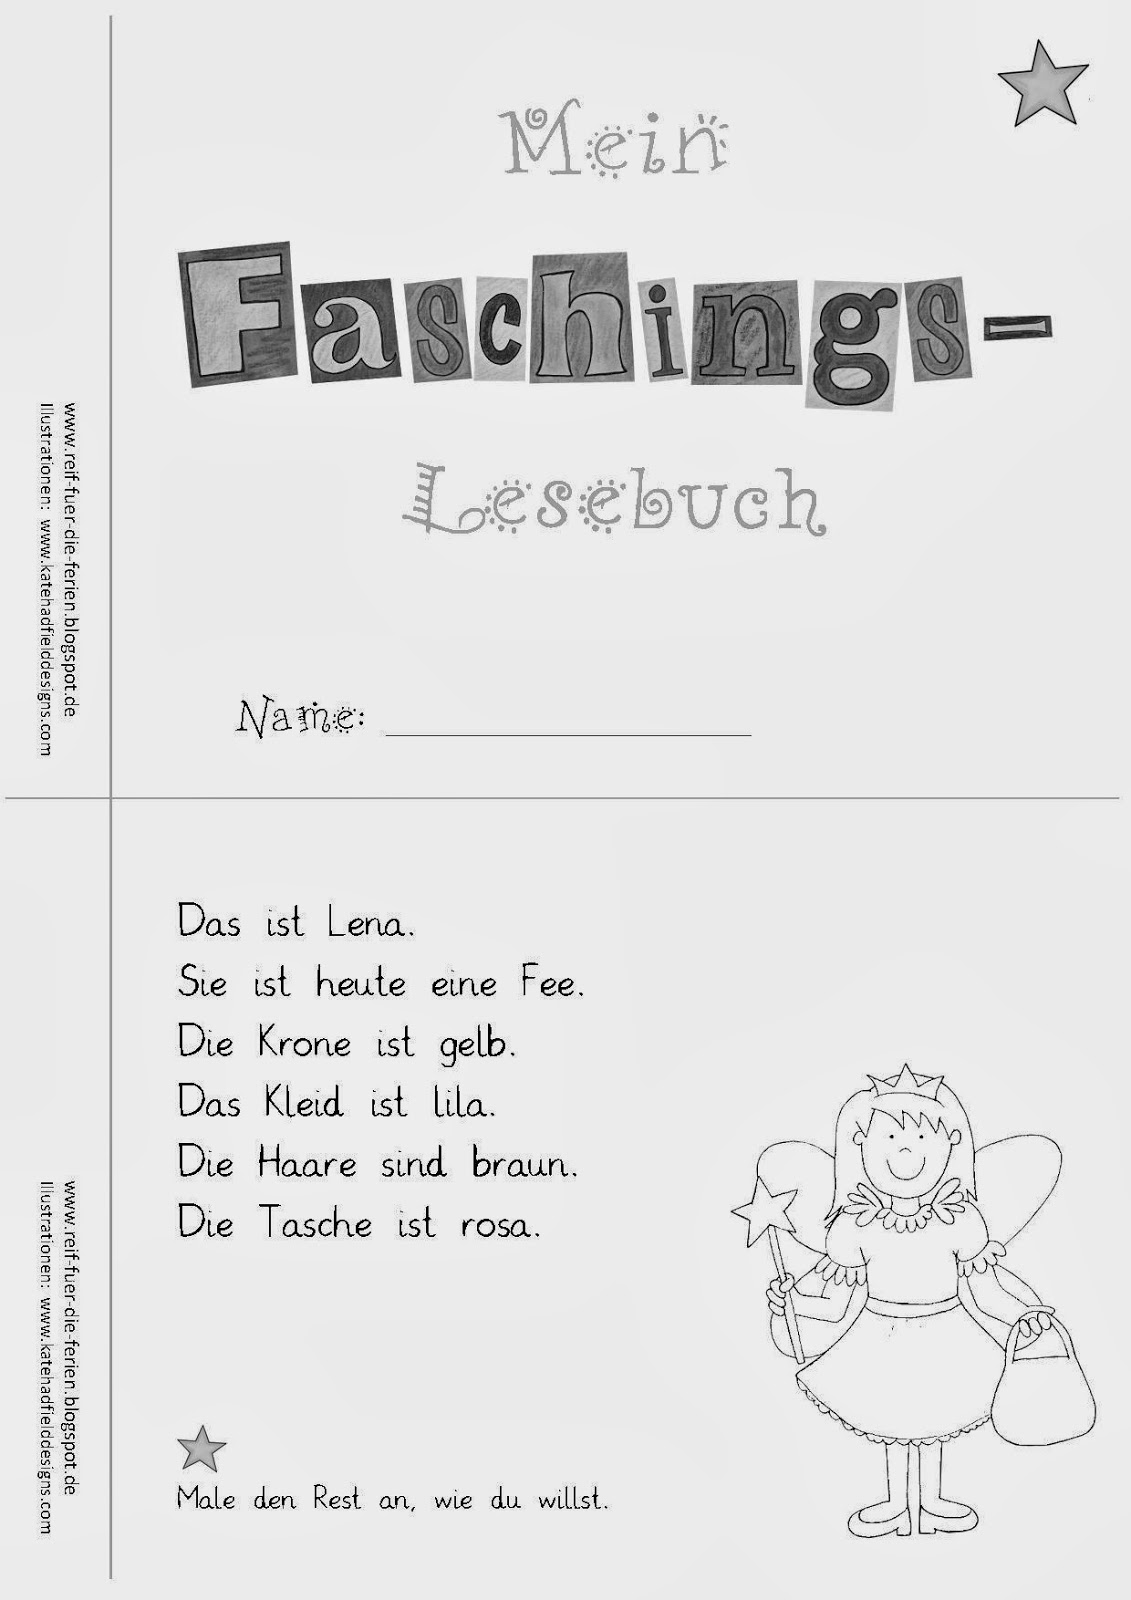 Faschings - Lesemini differenziert